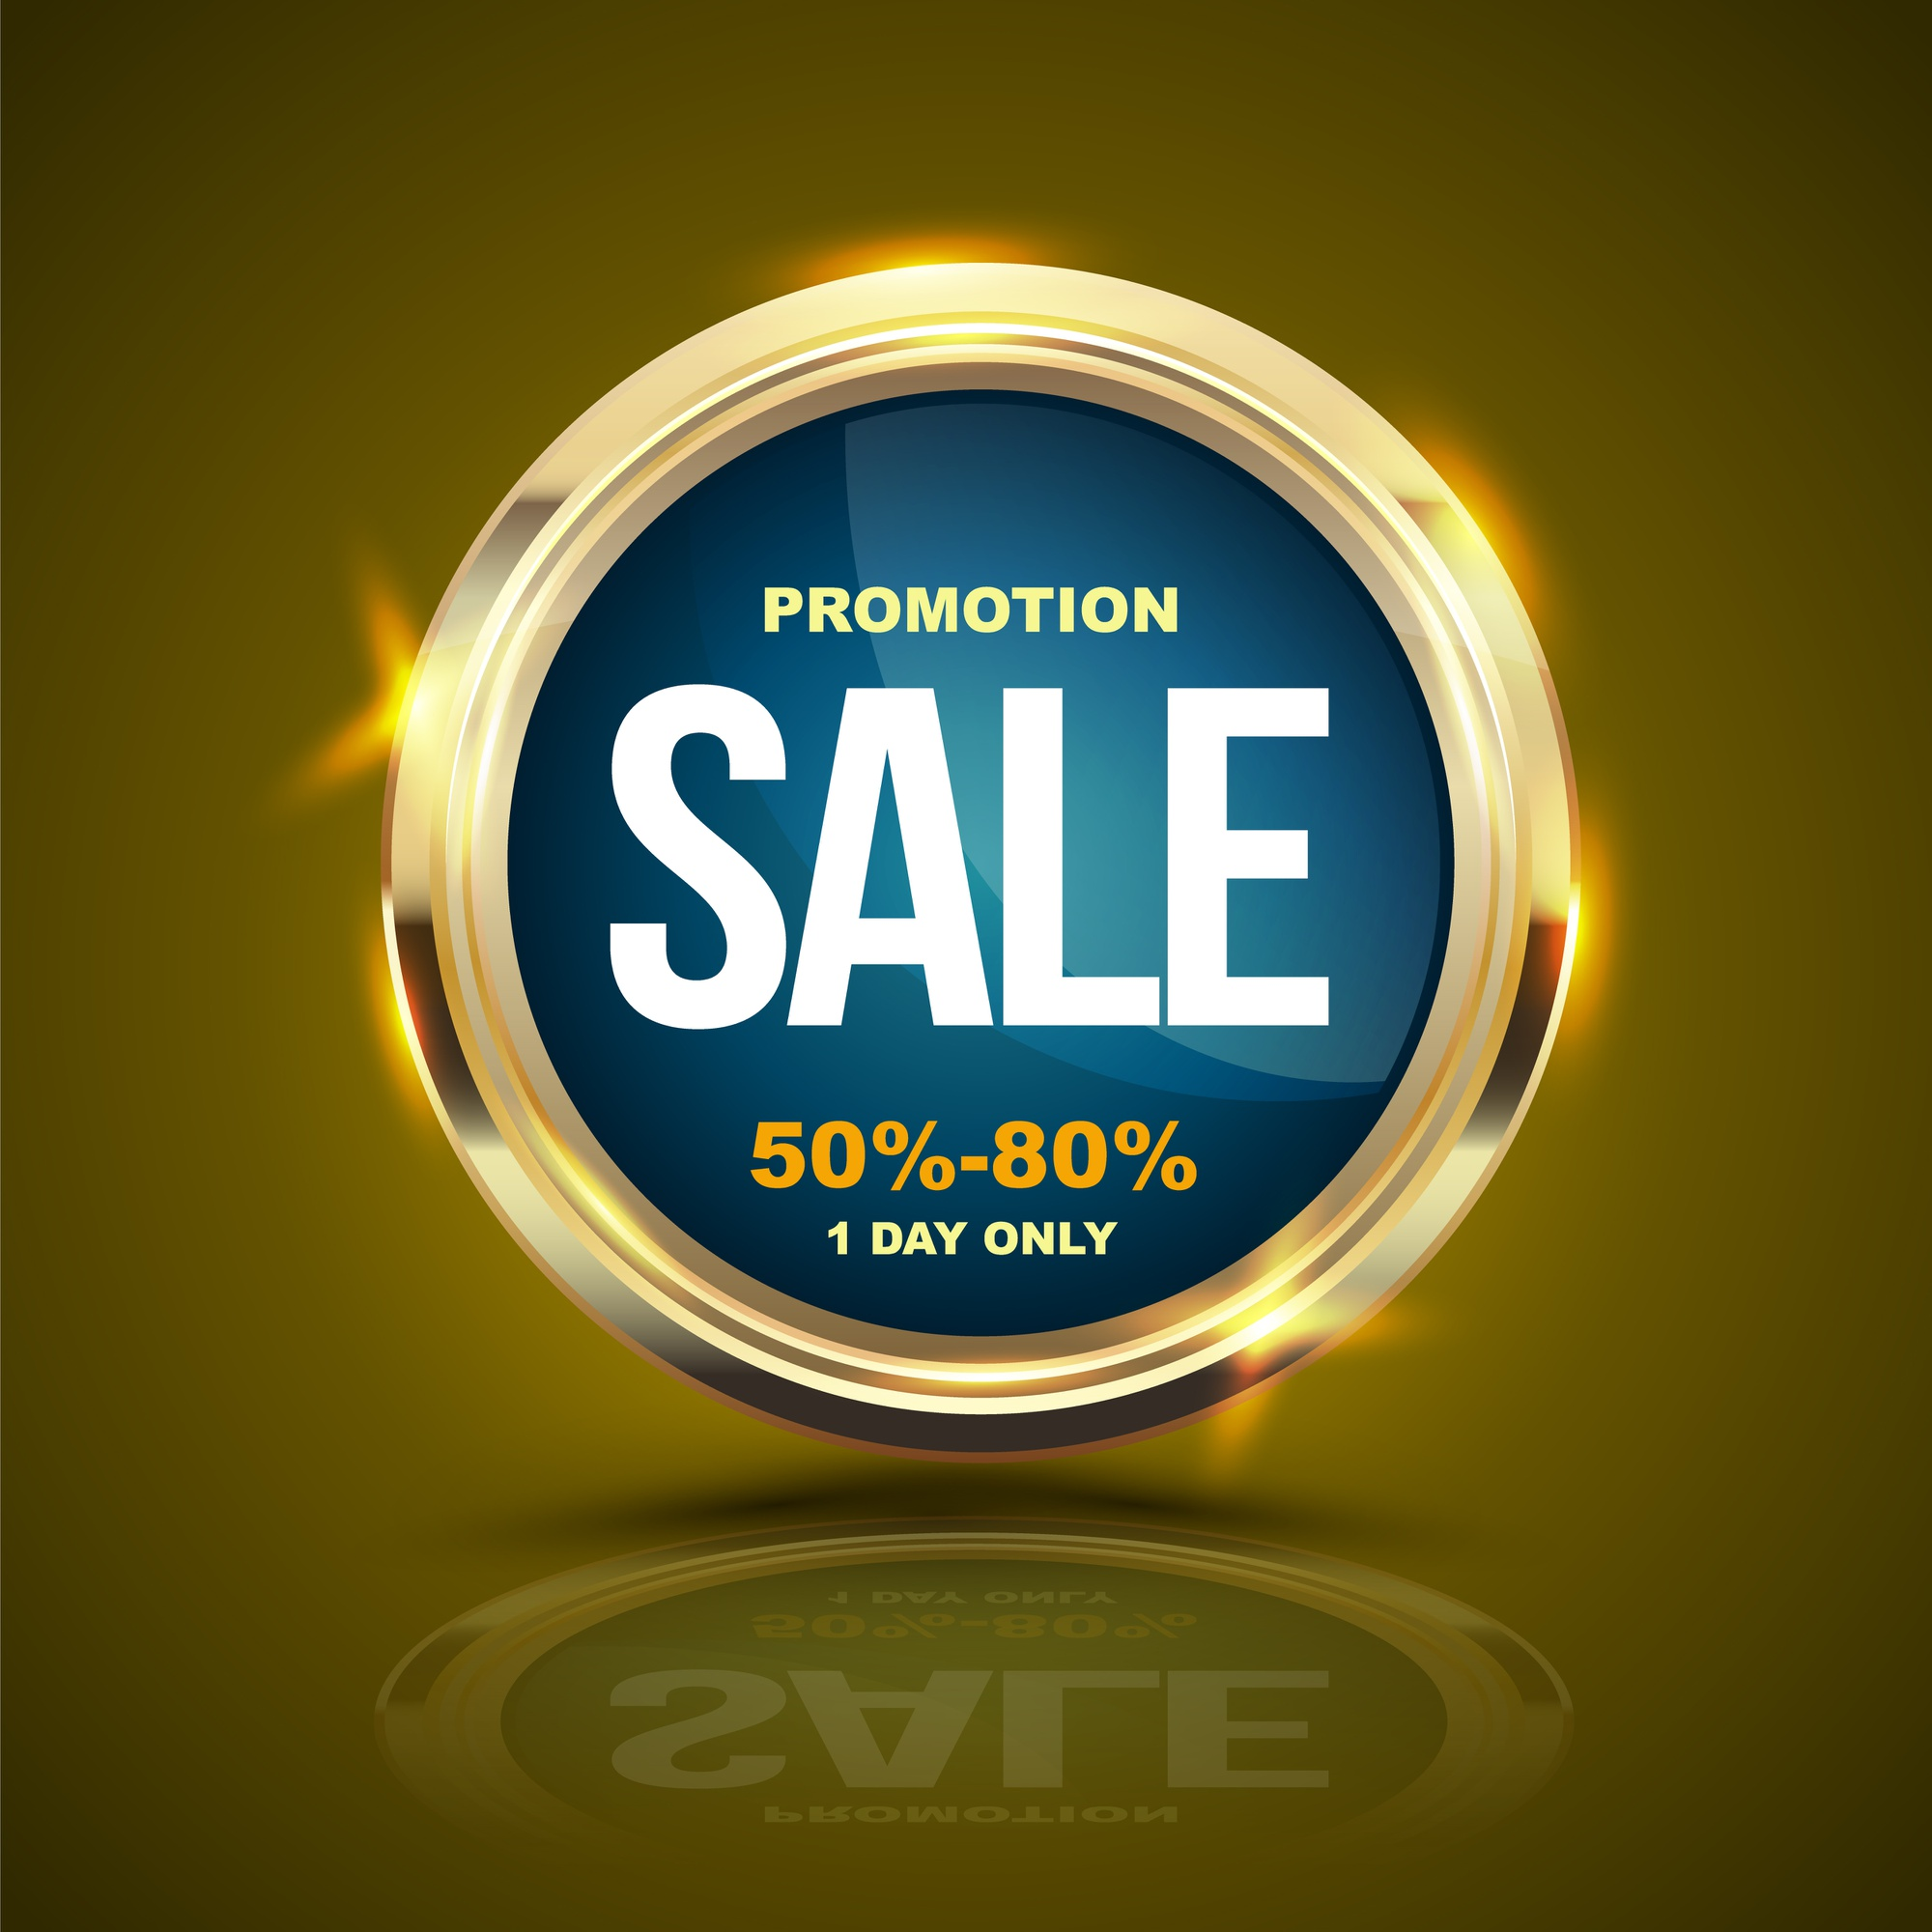 SALE banner gold circle for promotion advertising.